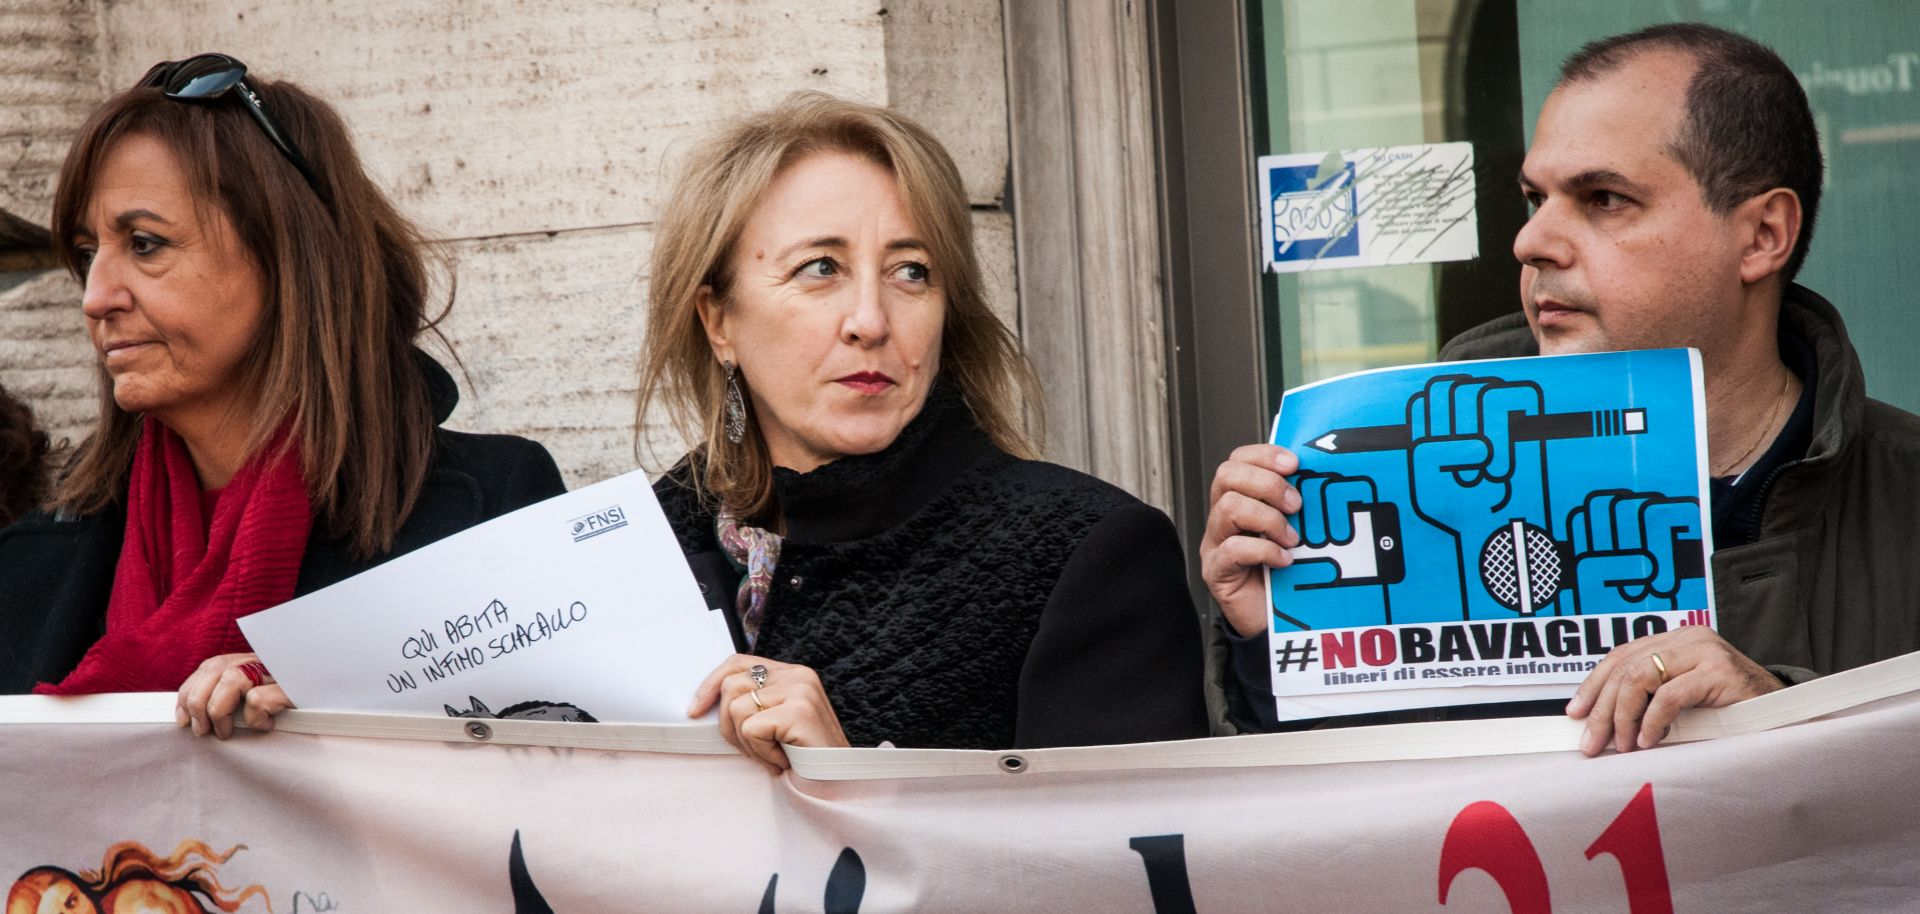 Italian journalists rally in Rome in defense of press freedom on Nov. 13, 2018.